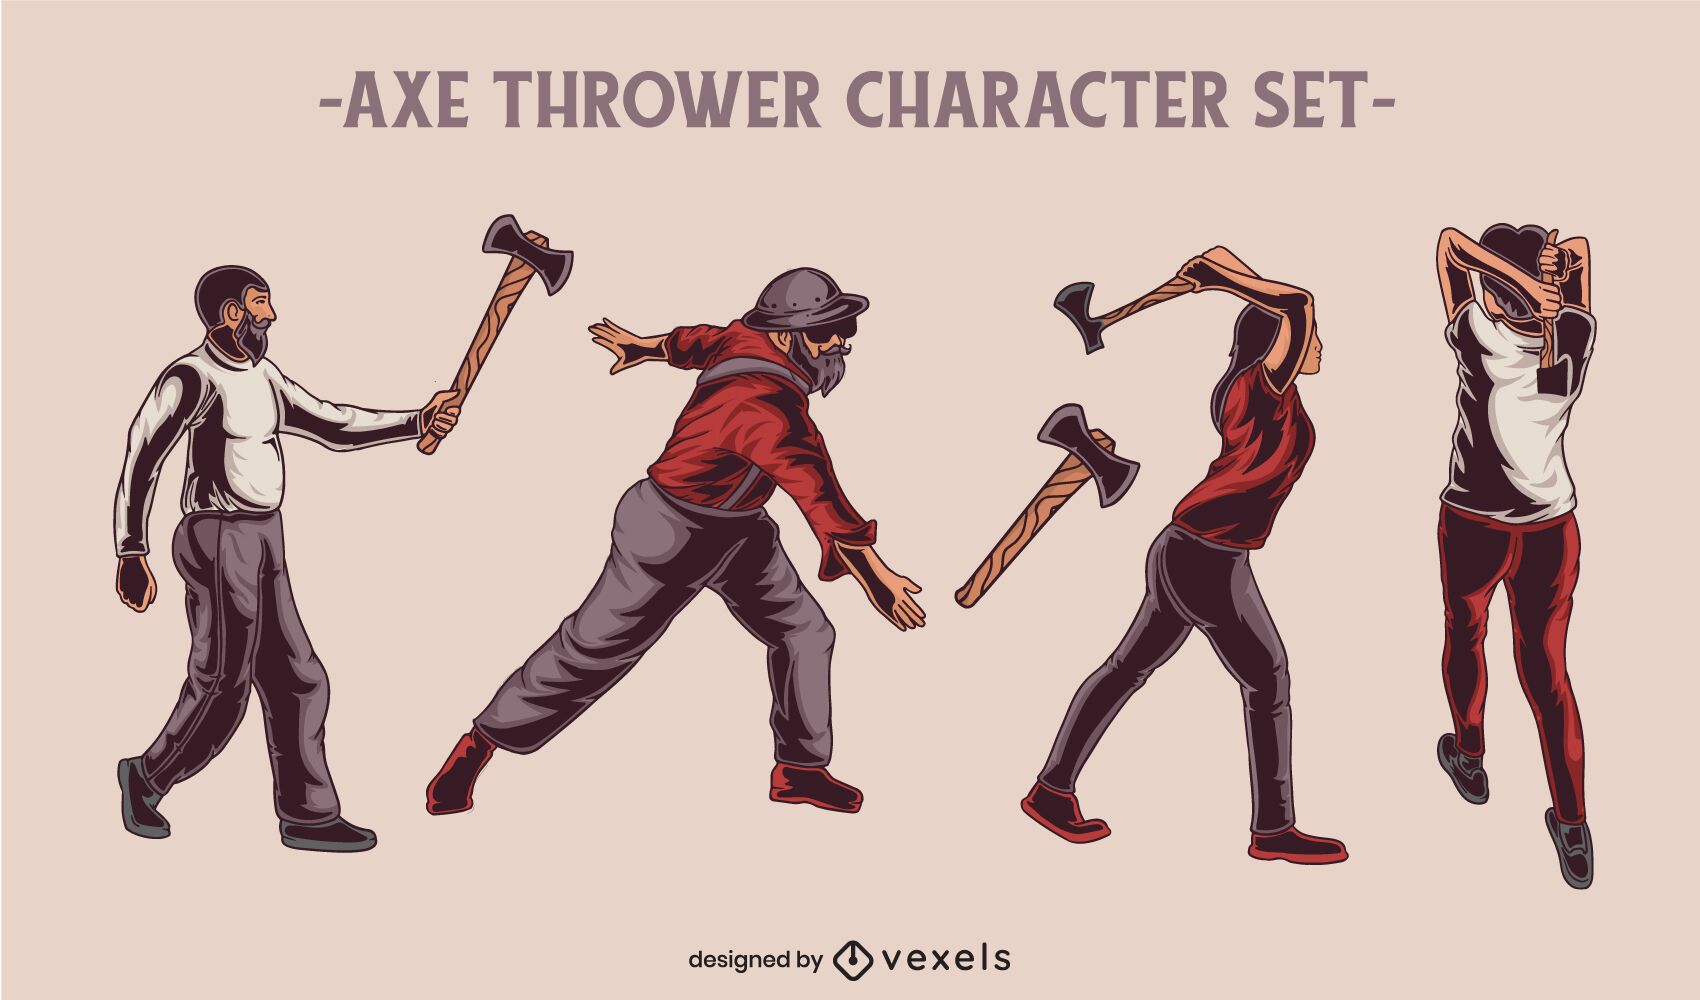 Axe weapon throwing hobby character set